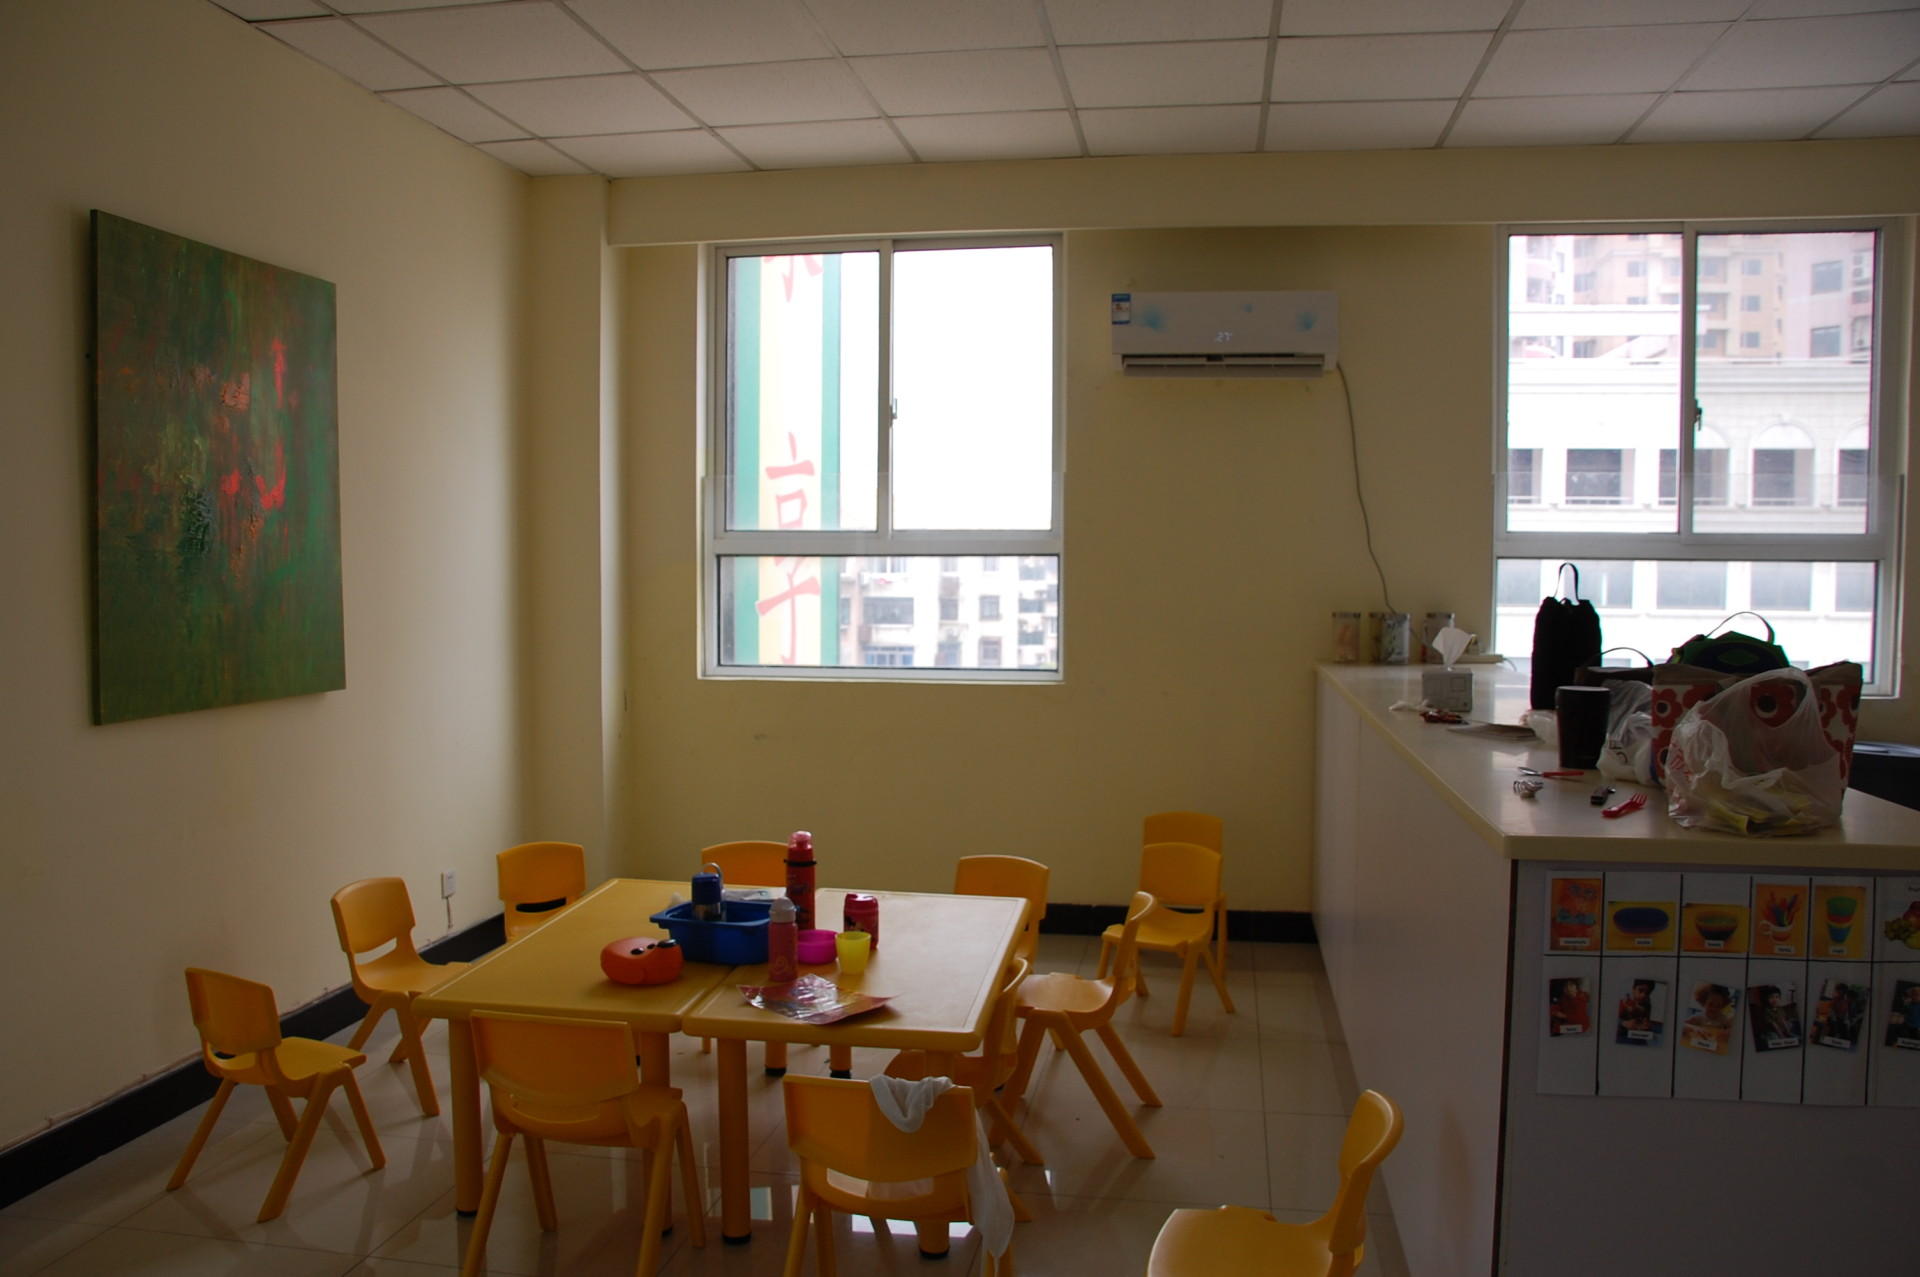 Almost lunch time! Our Lujiazui Campus kitchen and dining area.